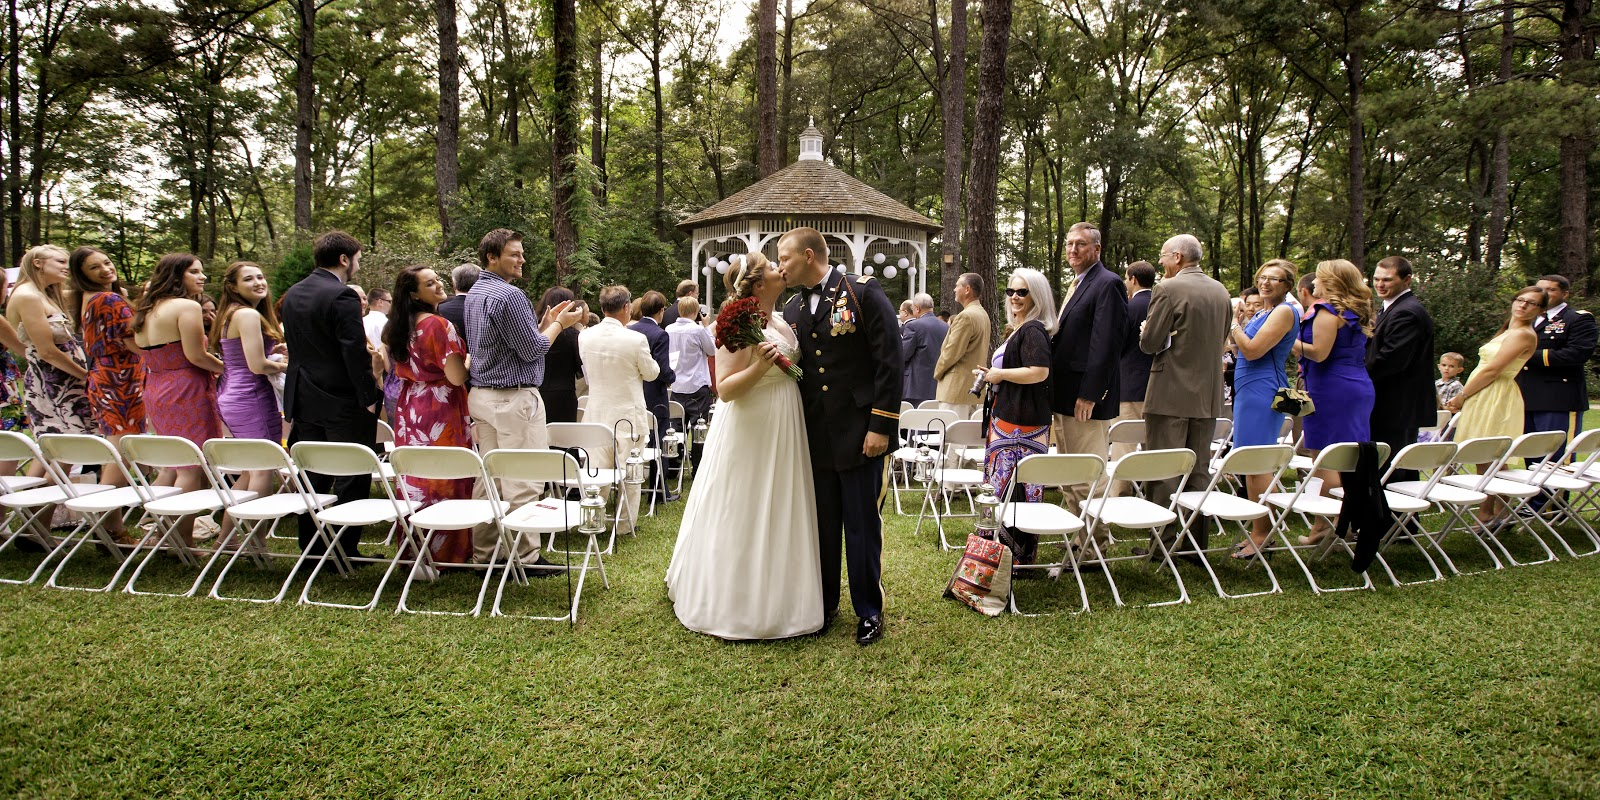 Amazing Ree Drummond Wedding 8 Mg 9586 20t Jpg